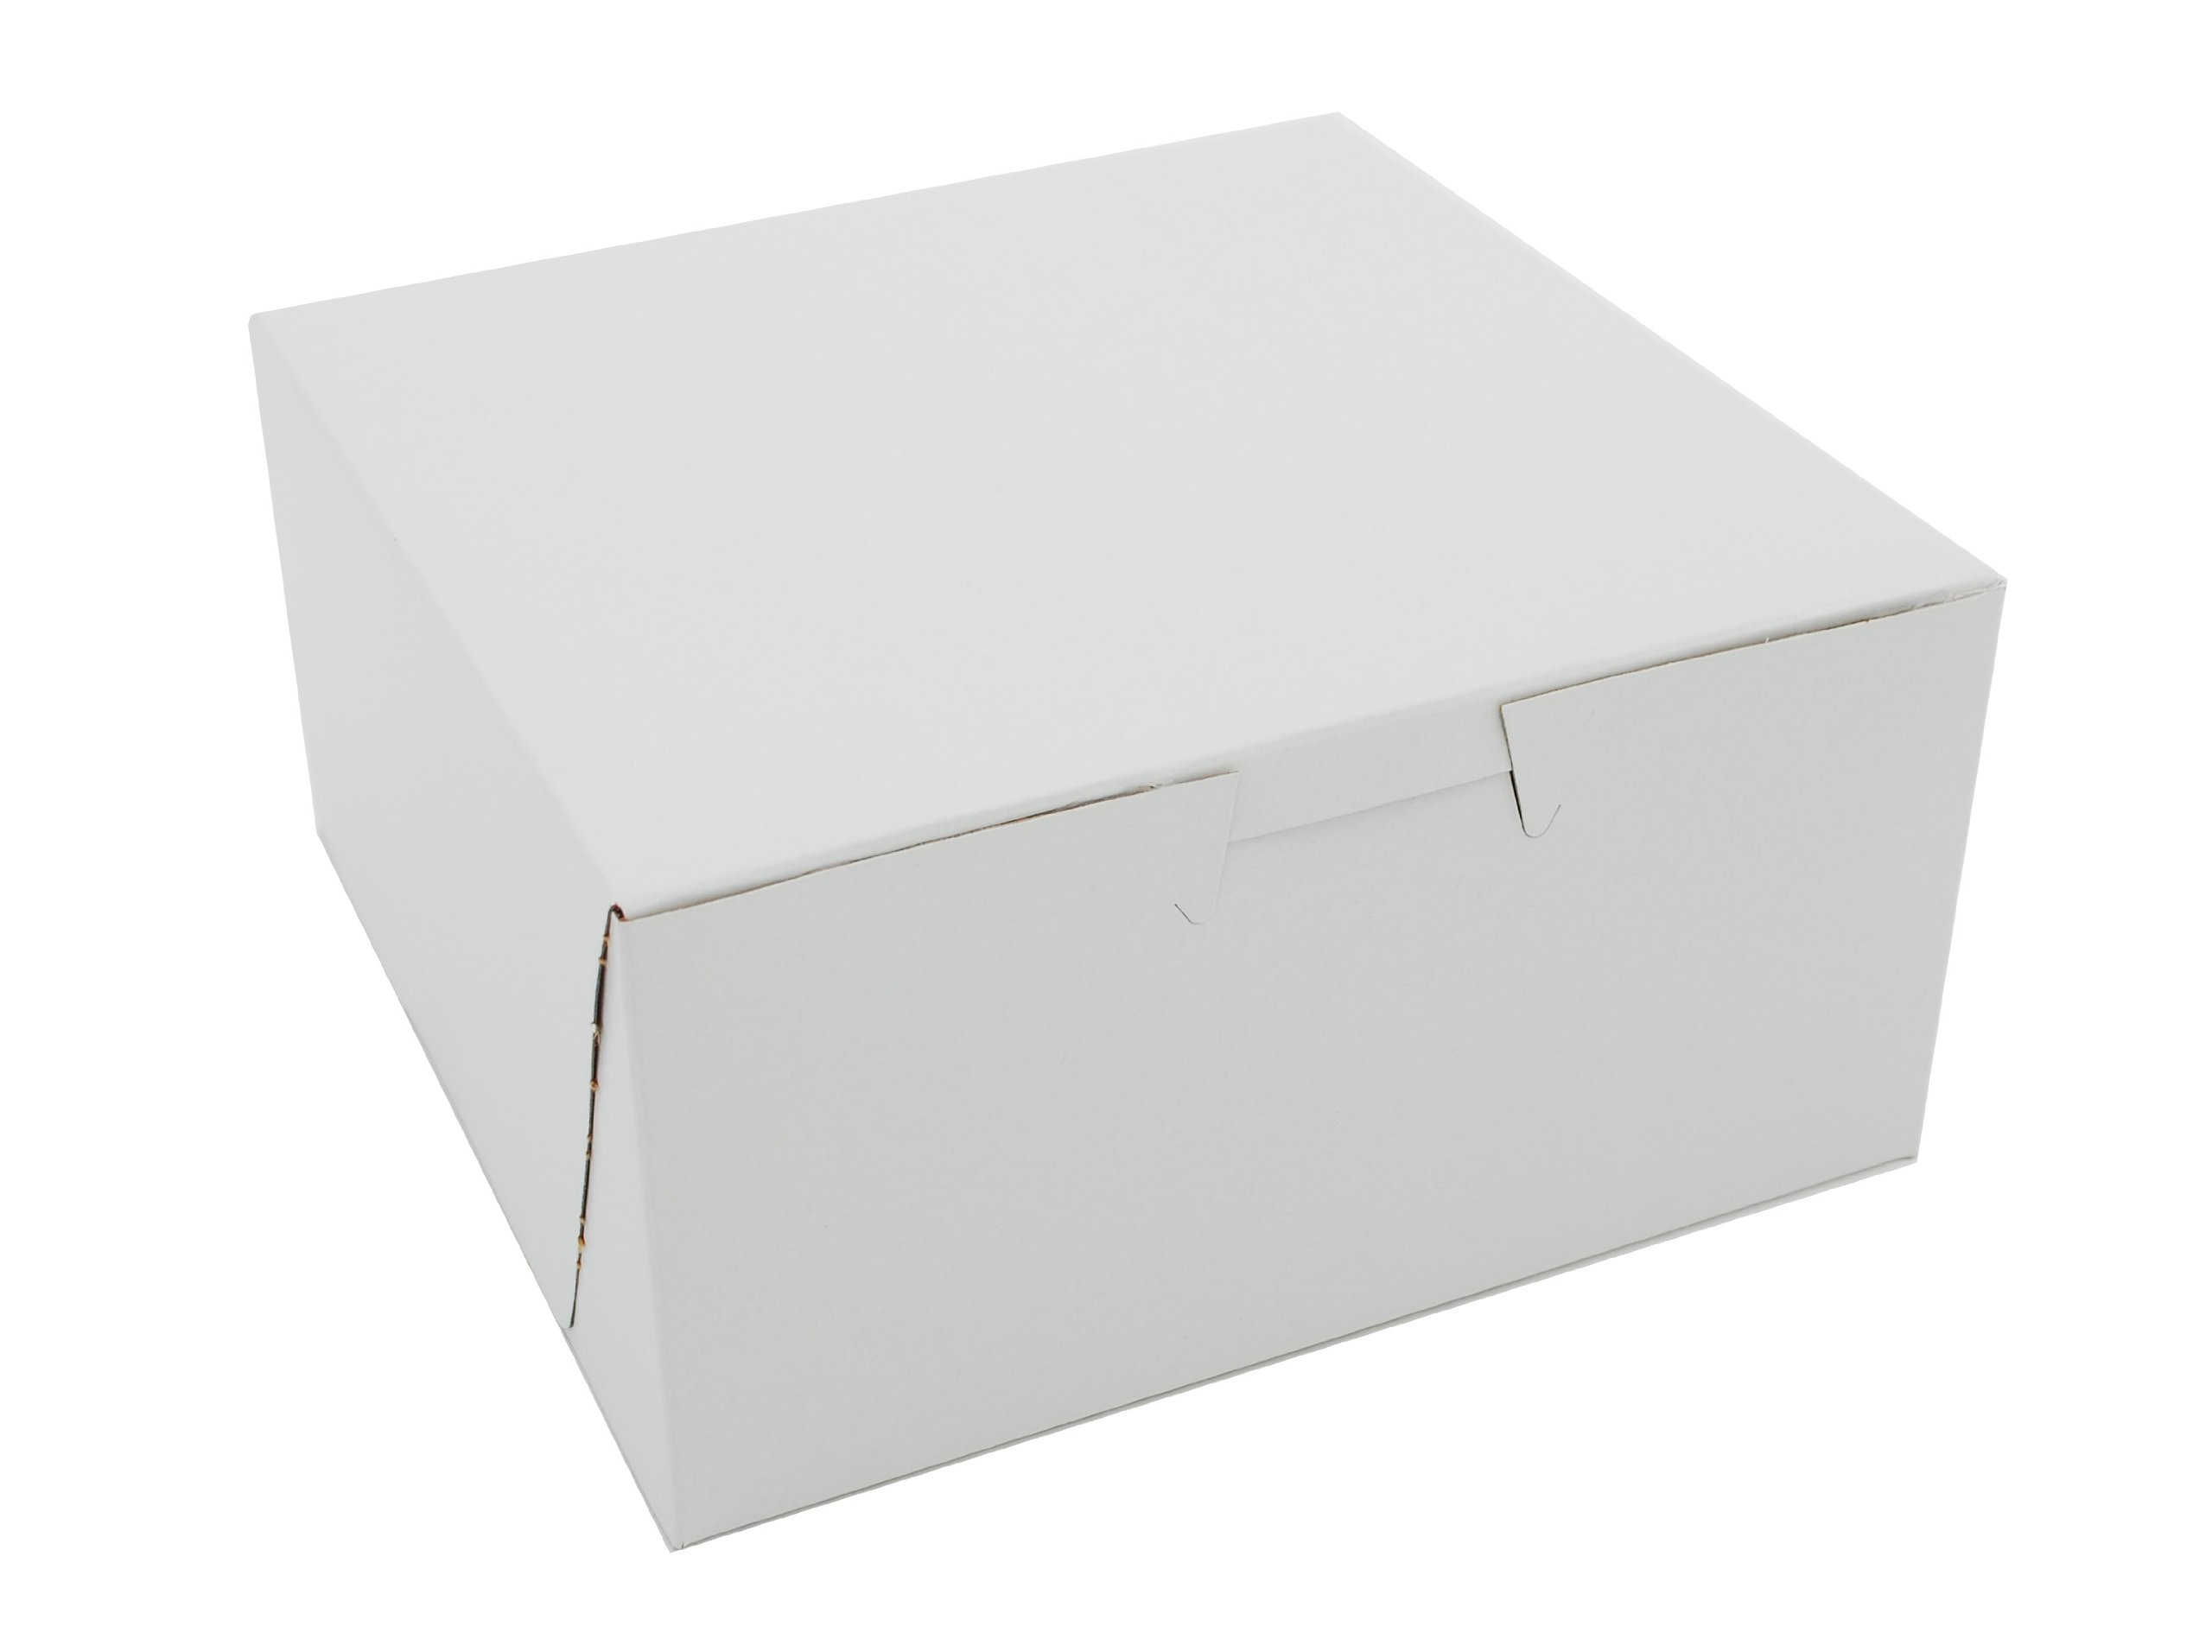 Southern Champion Tray 0905 Premium Clay Coated Kraft Paperboard White Non-Window Lock Corner Bakery Box, 6'' Length x 6'' Width x 3'' Height (Case of 250)